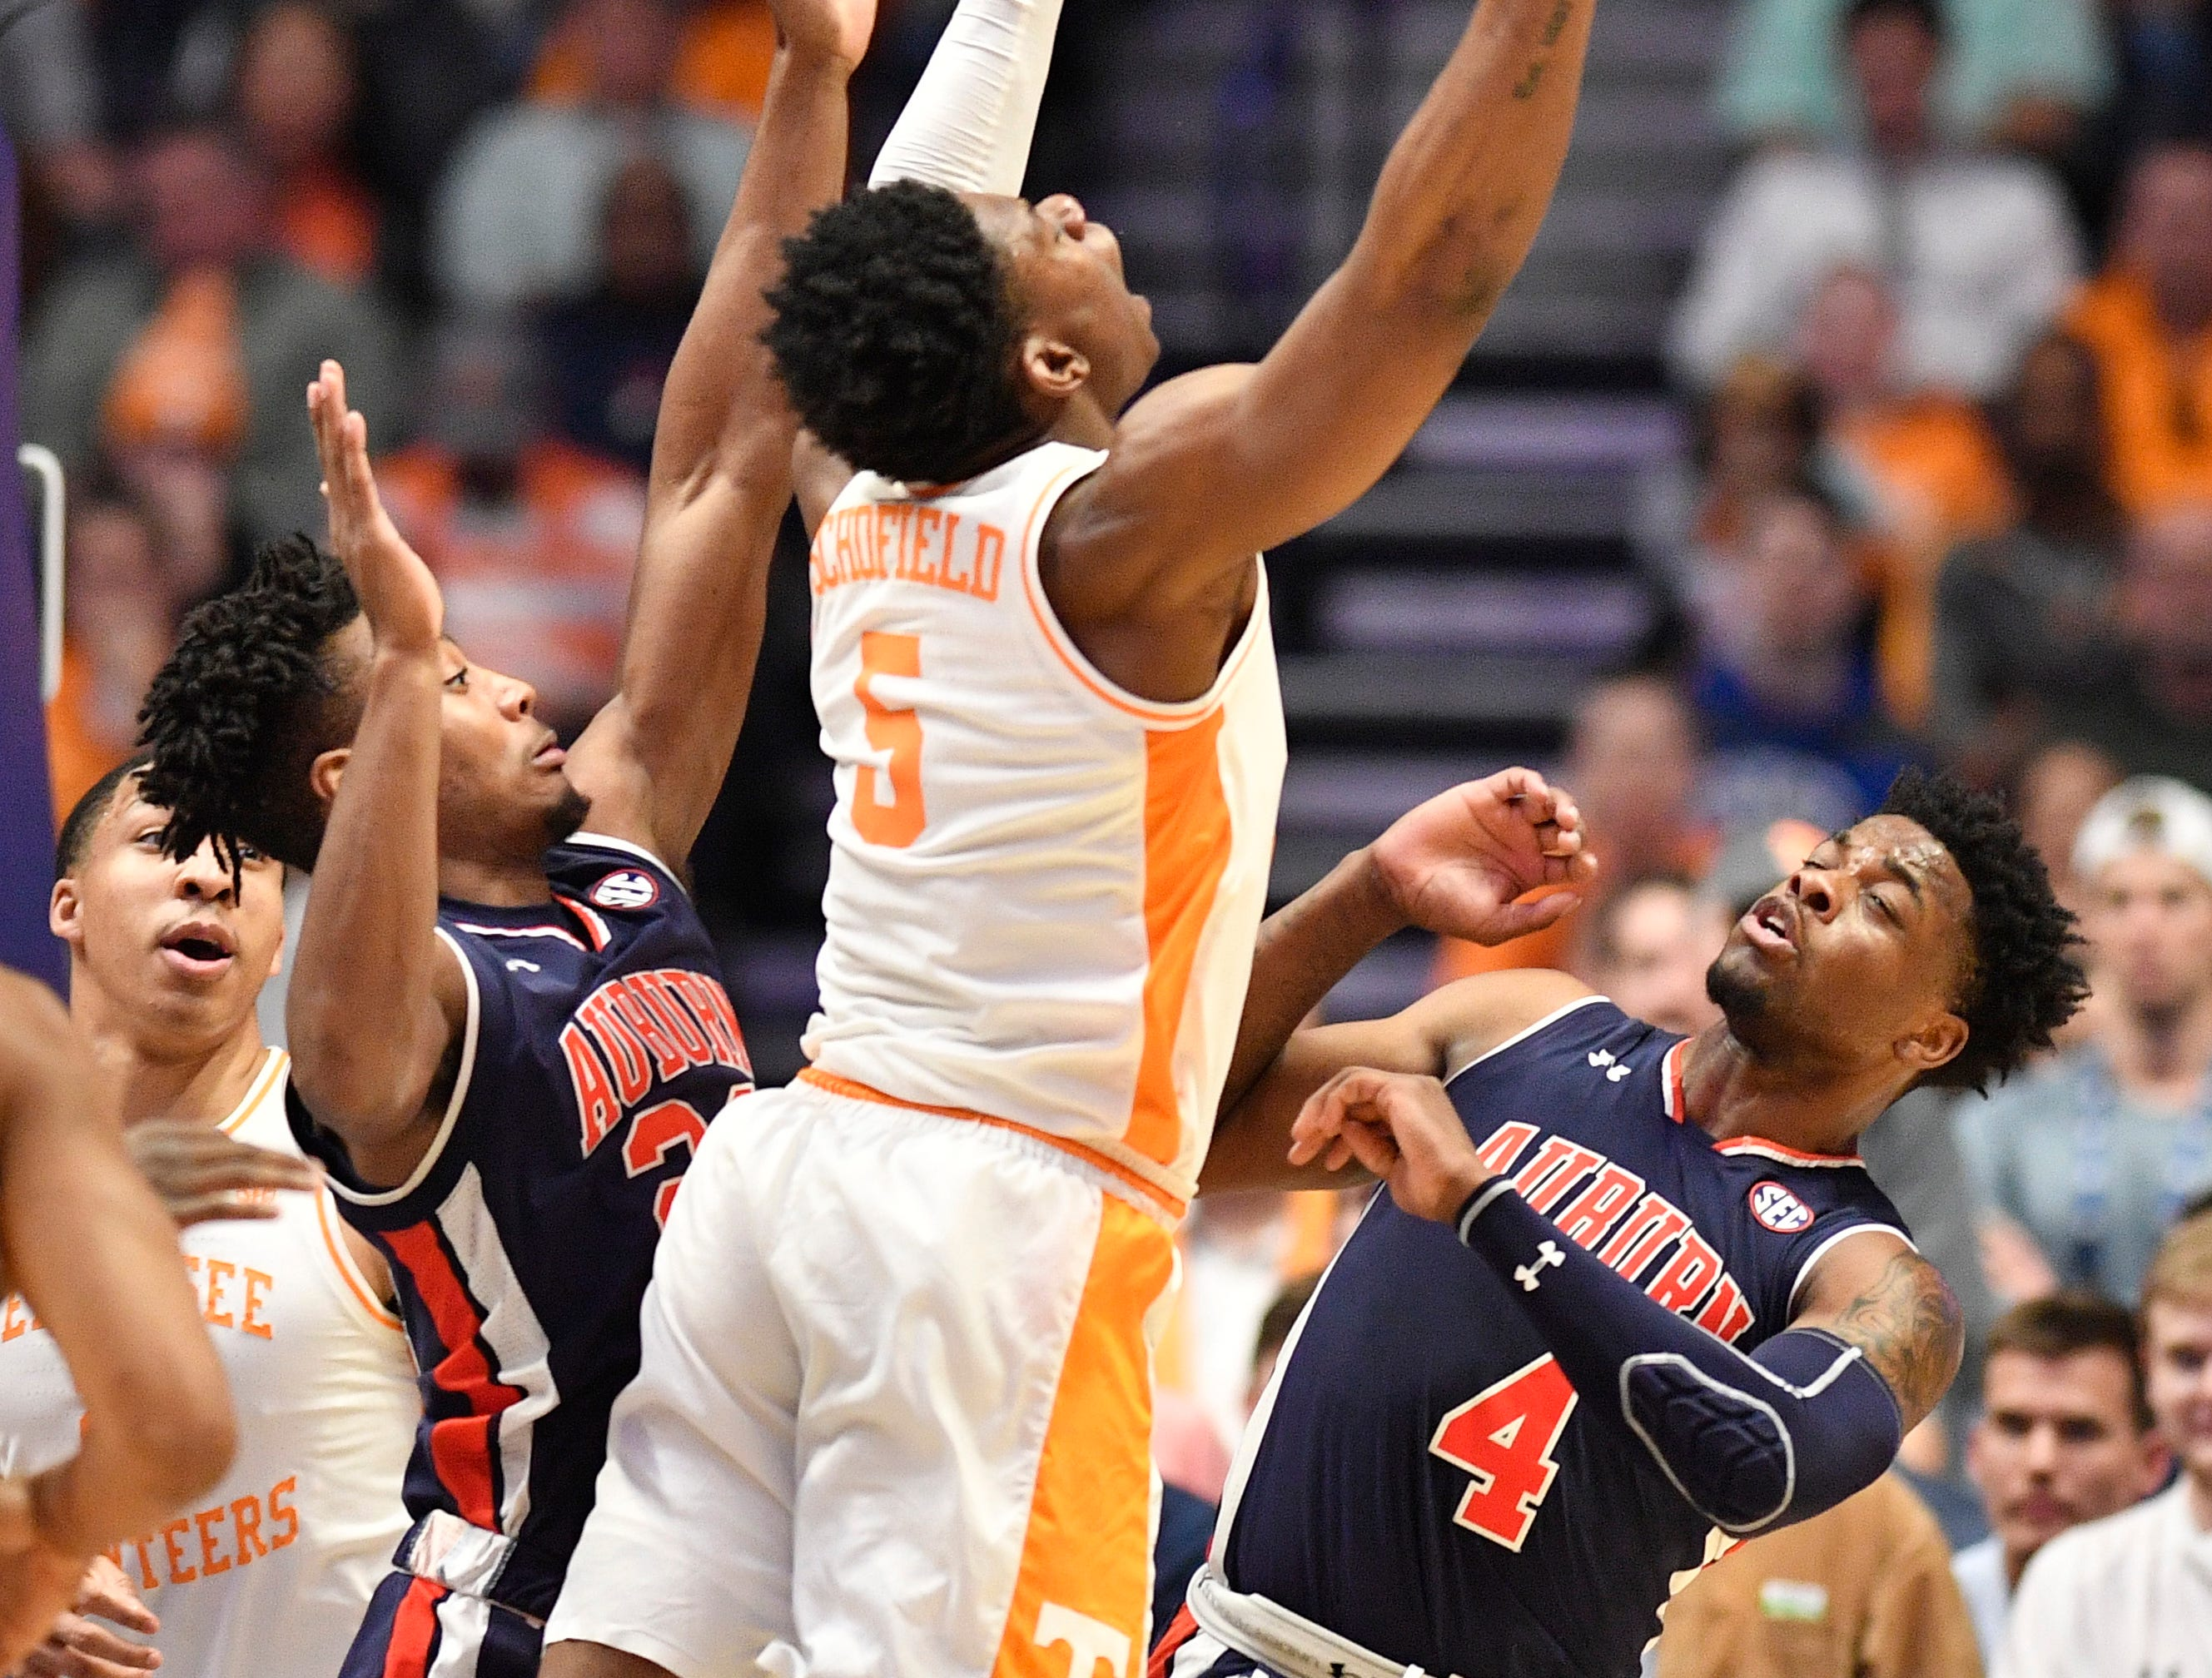 Auburn forward Anfernee McLemore (24), Tennessee guard Admiral Schofield (5) and Auburn guard/forward Malik Dunbar (4) battle for a loose ball during the first half of the SEC Men's Basketball Tournament championship game at Bridgestone Arena in Nashville, Tenn., Sunday, March 17, 2019.